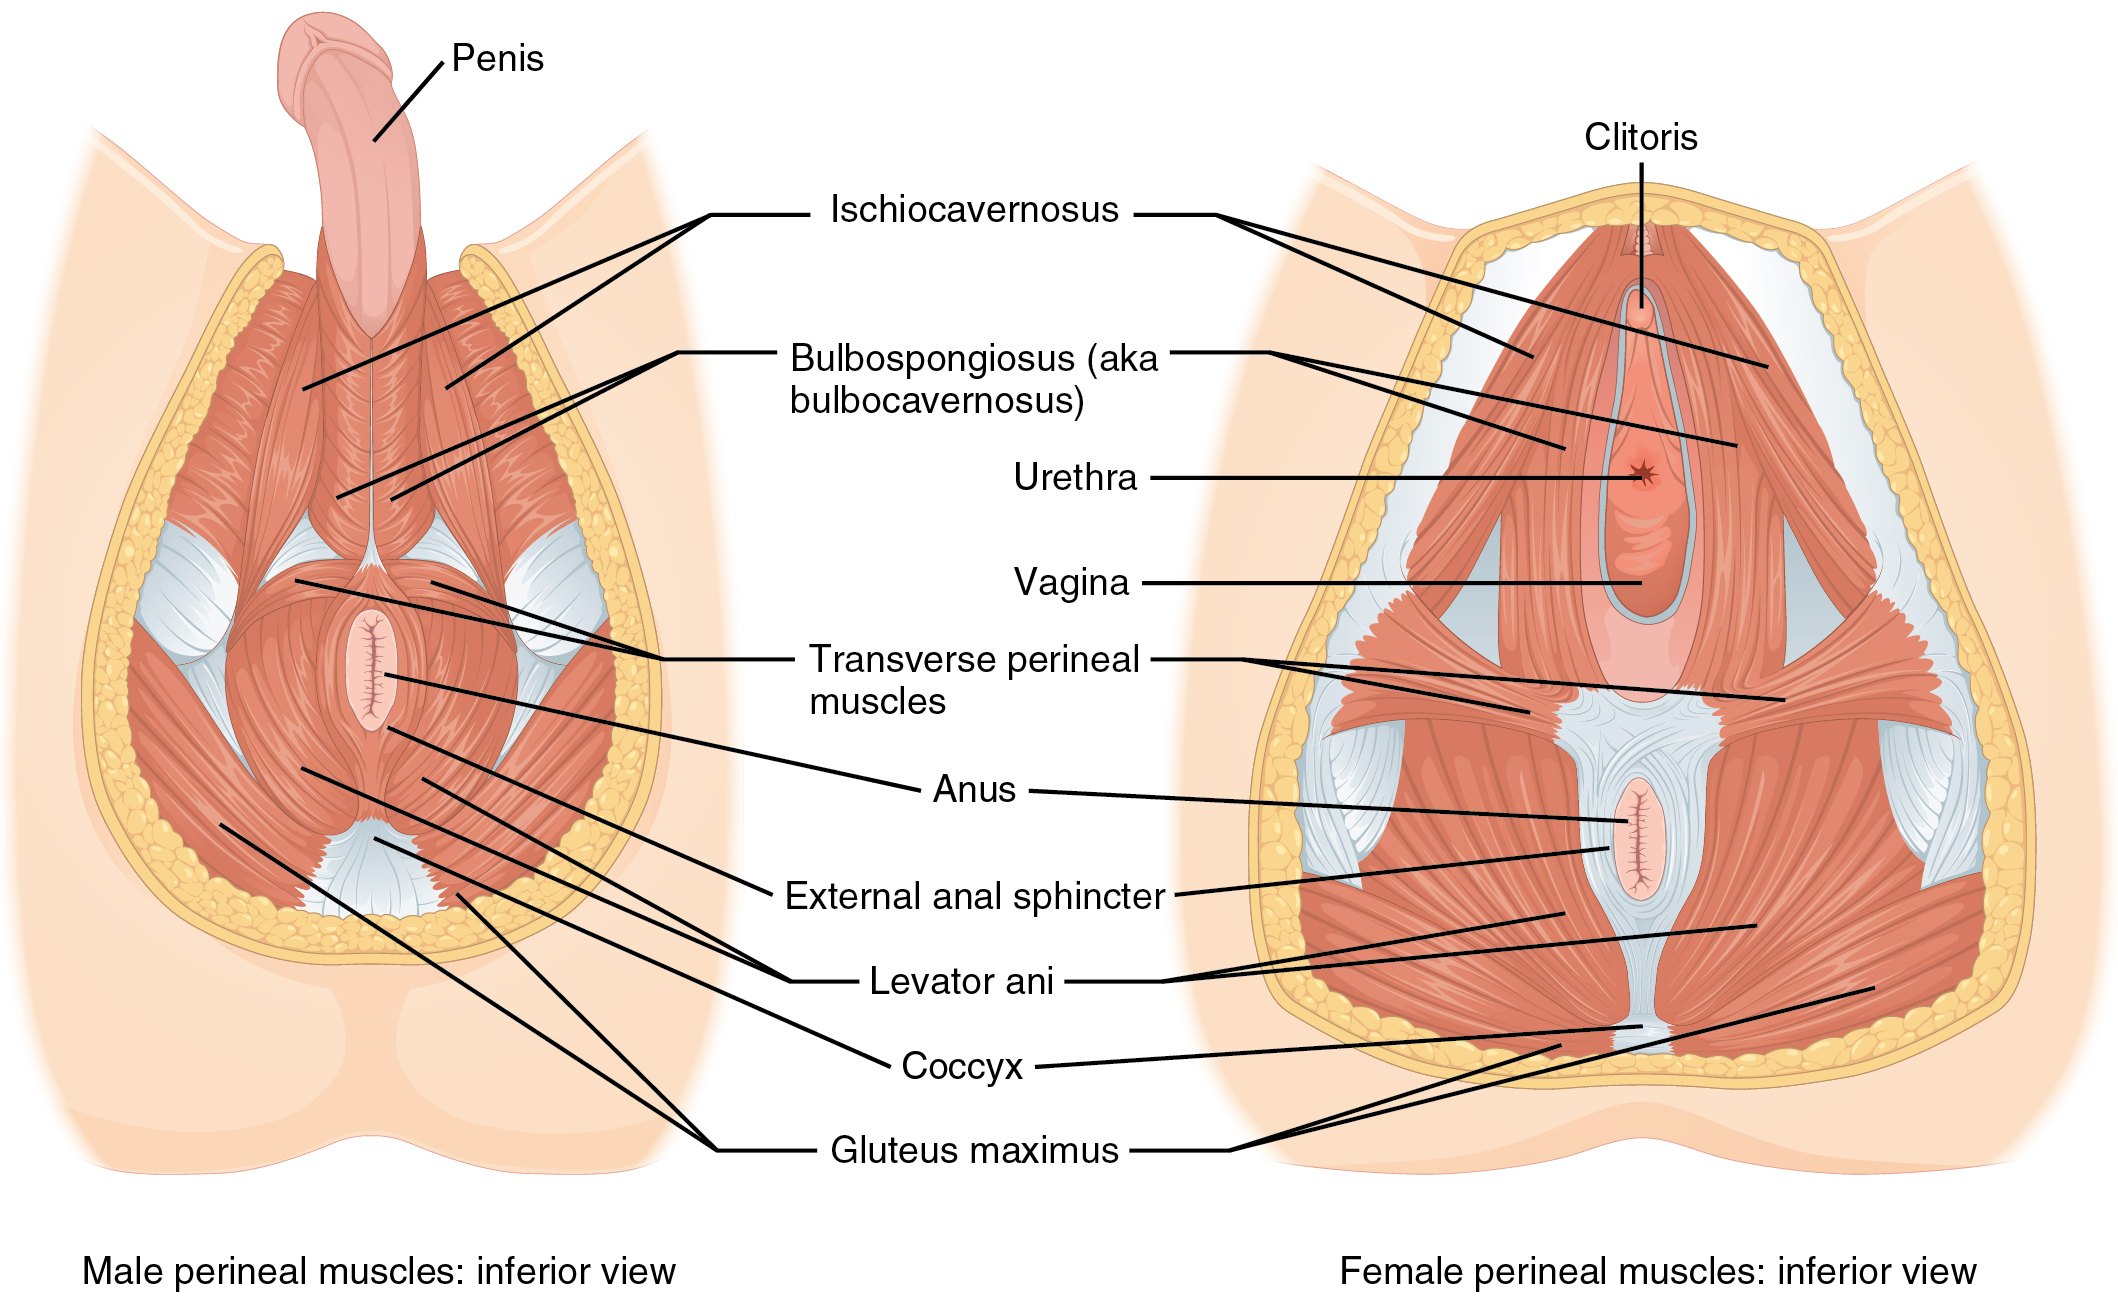 The left panel shows the muscles of the pelvic floor/perineum in the male, and the right panel shows the muscles of the pelvic floor/perineum in the female.